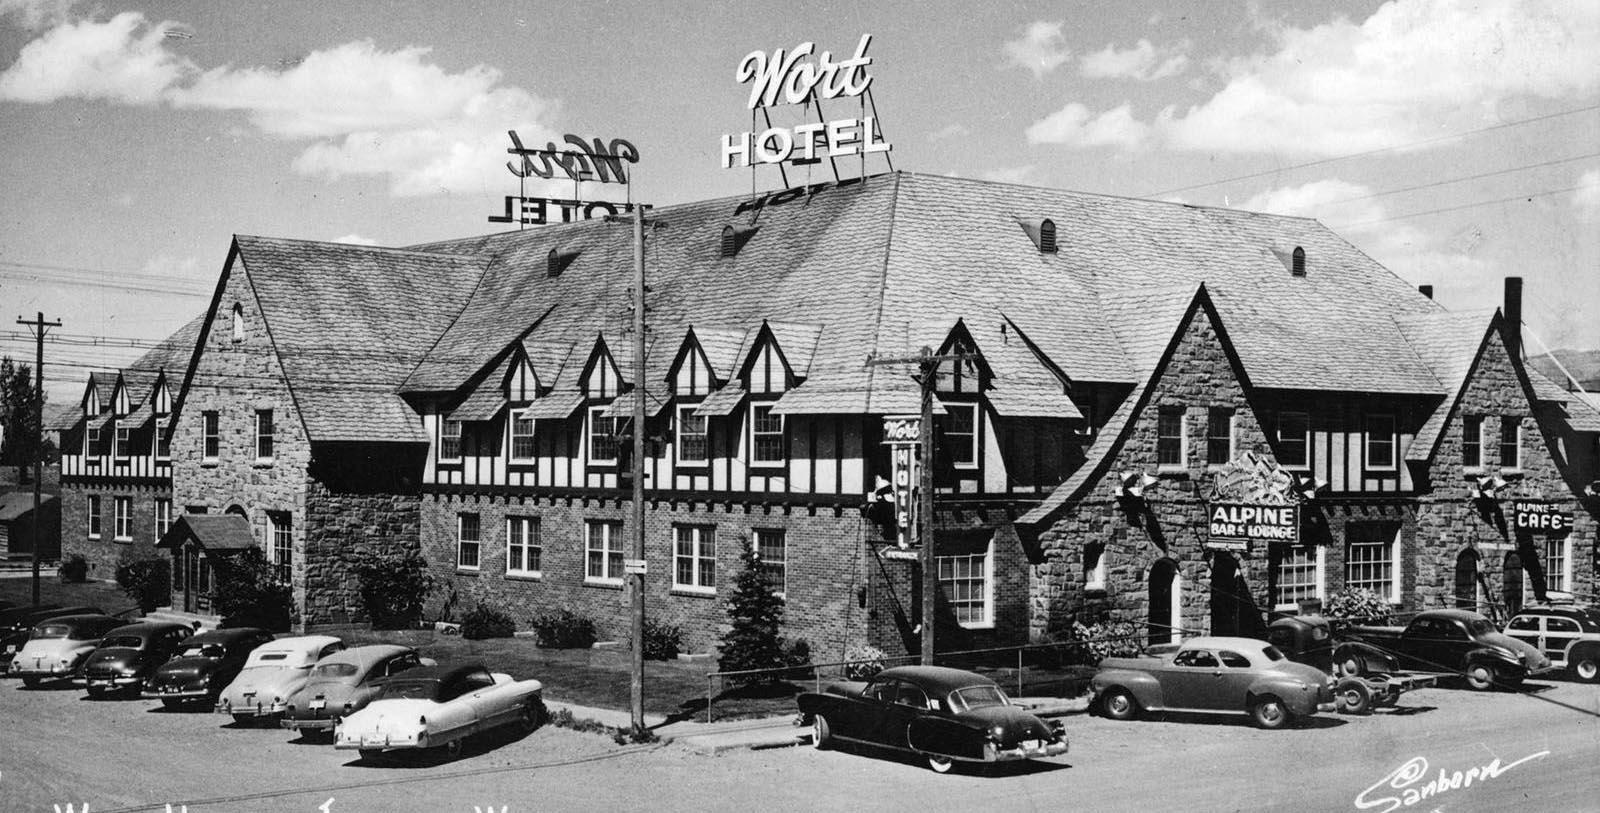 Historic image of hotel exterior The Wort Hotel, 1941, Member of Historic Hotels of America, in Jackson, Wyoming,Discover